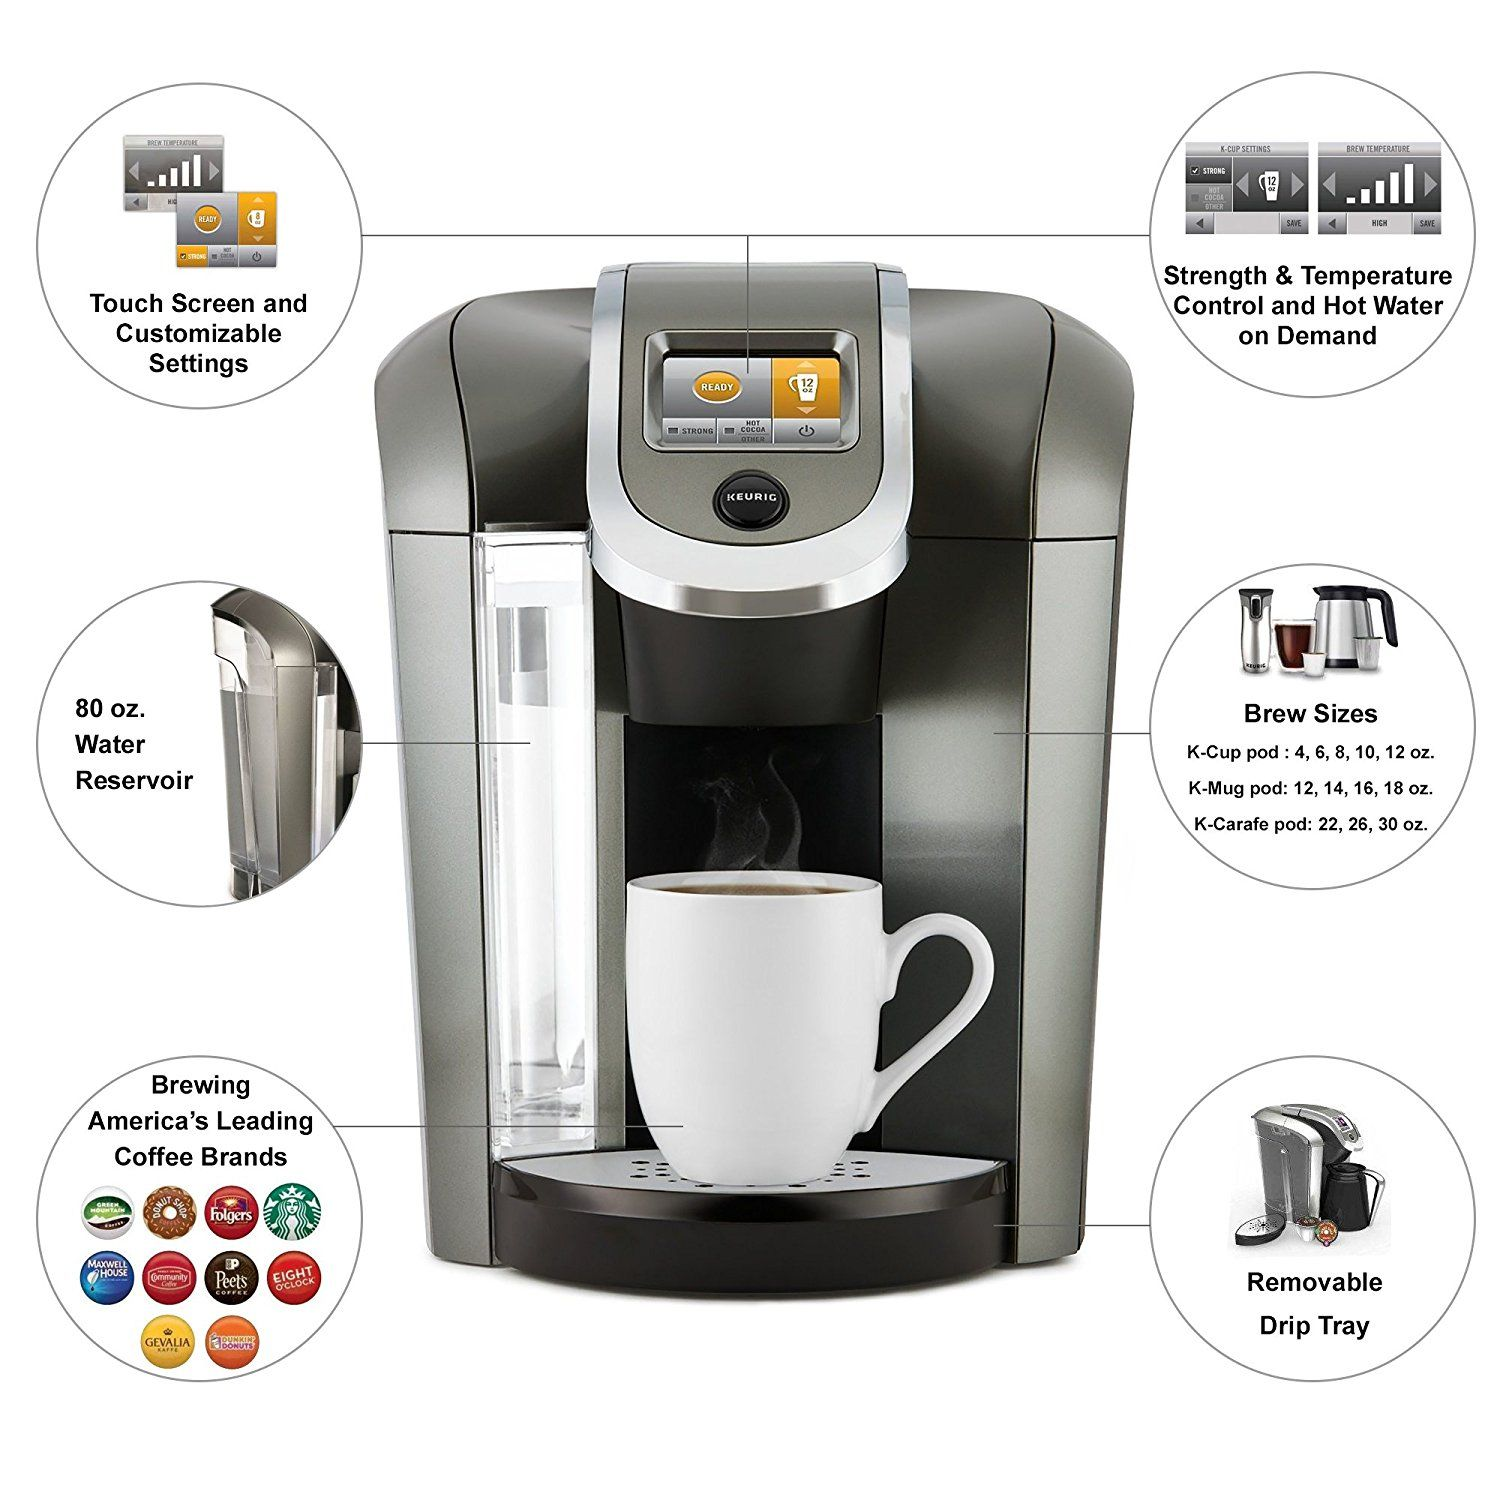 Amazon Com Keurig K575 Single Serve Programmable K Cup Coffee Maker With 12 Oz Brew Siz Single Serve Coffee Makers Single Coffee Maker Single Cup Coffee Maker